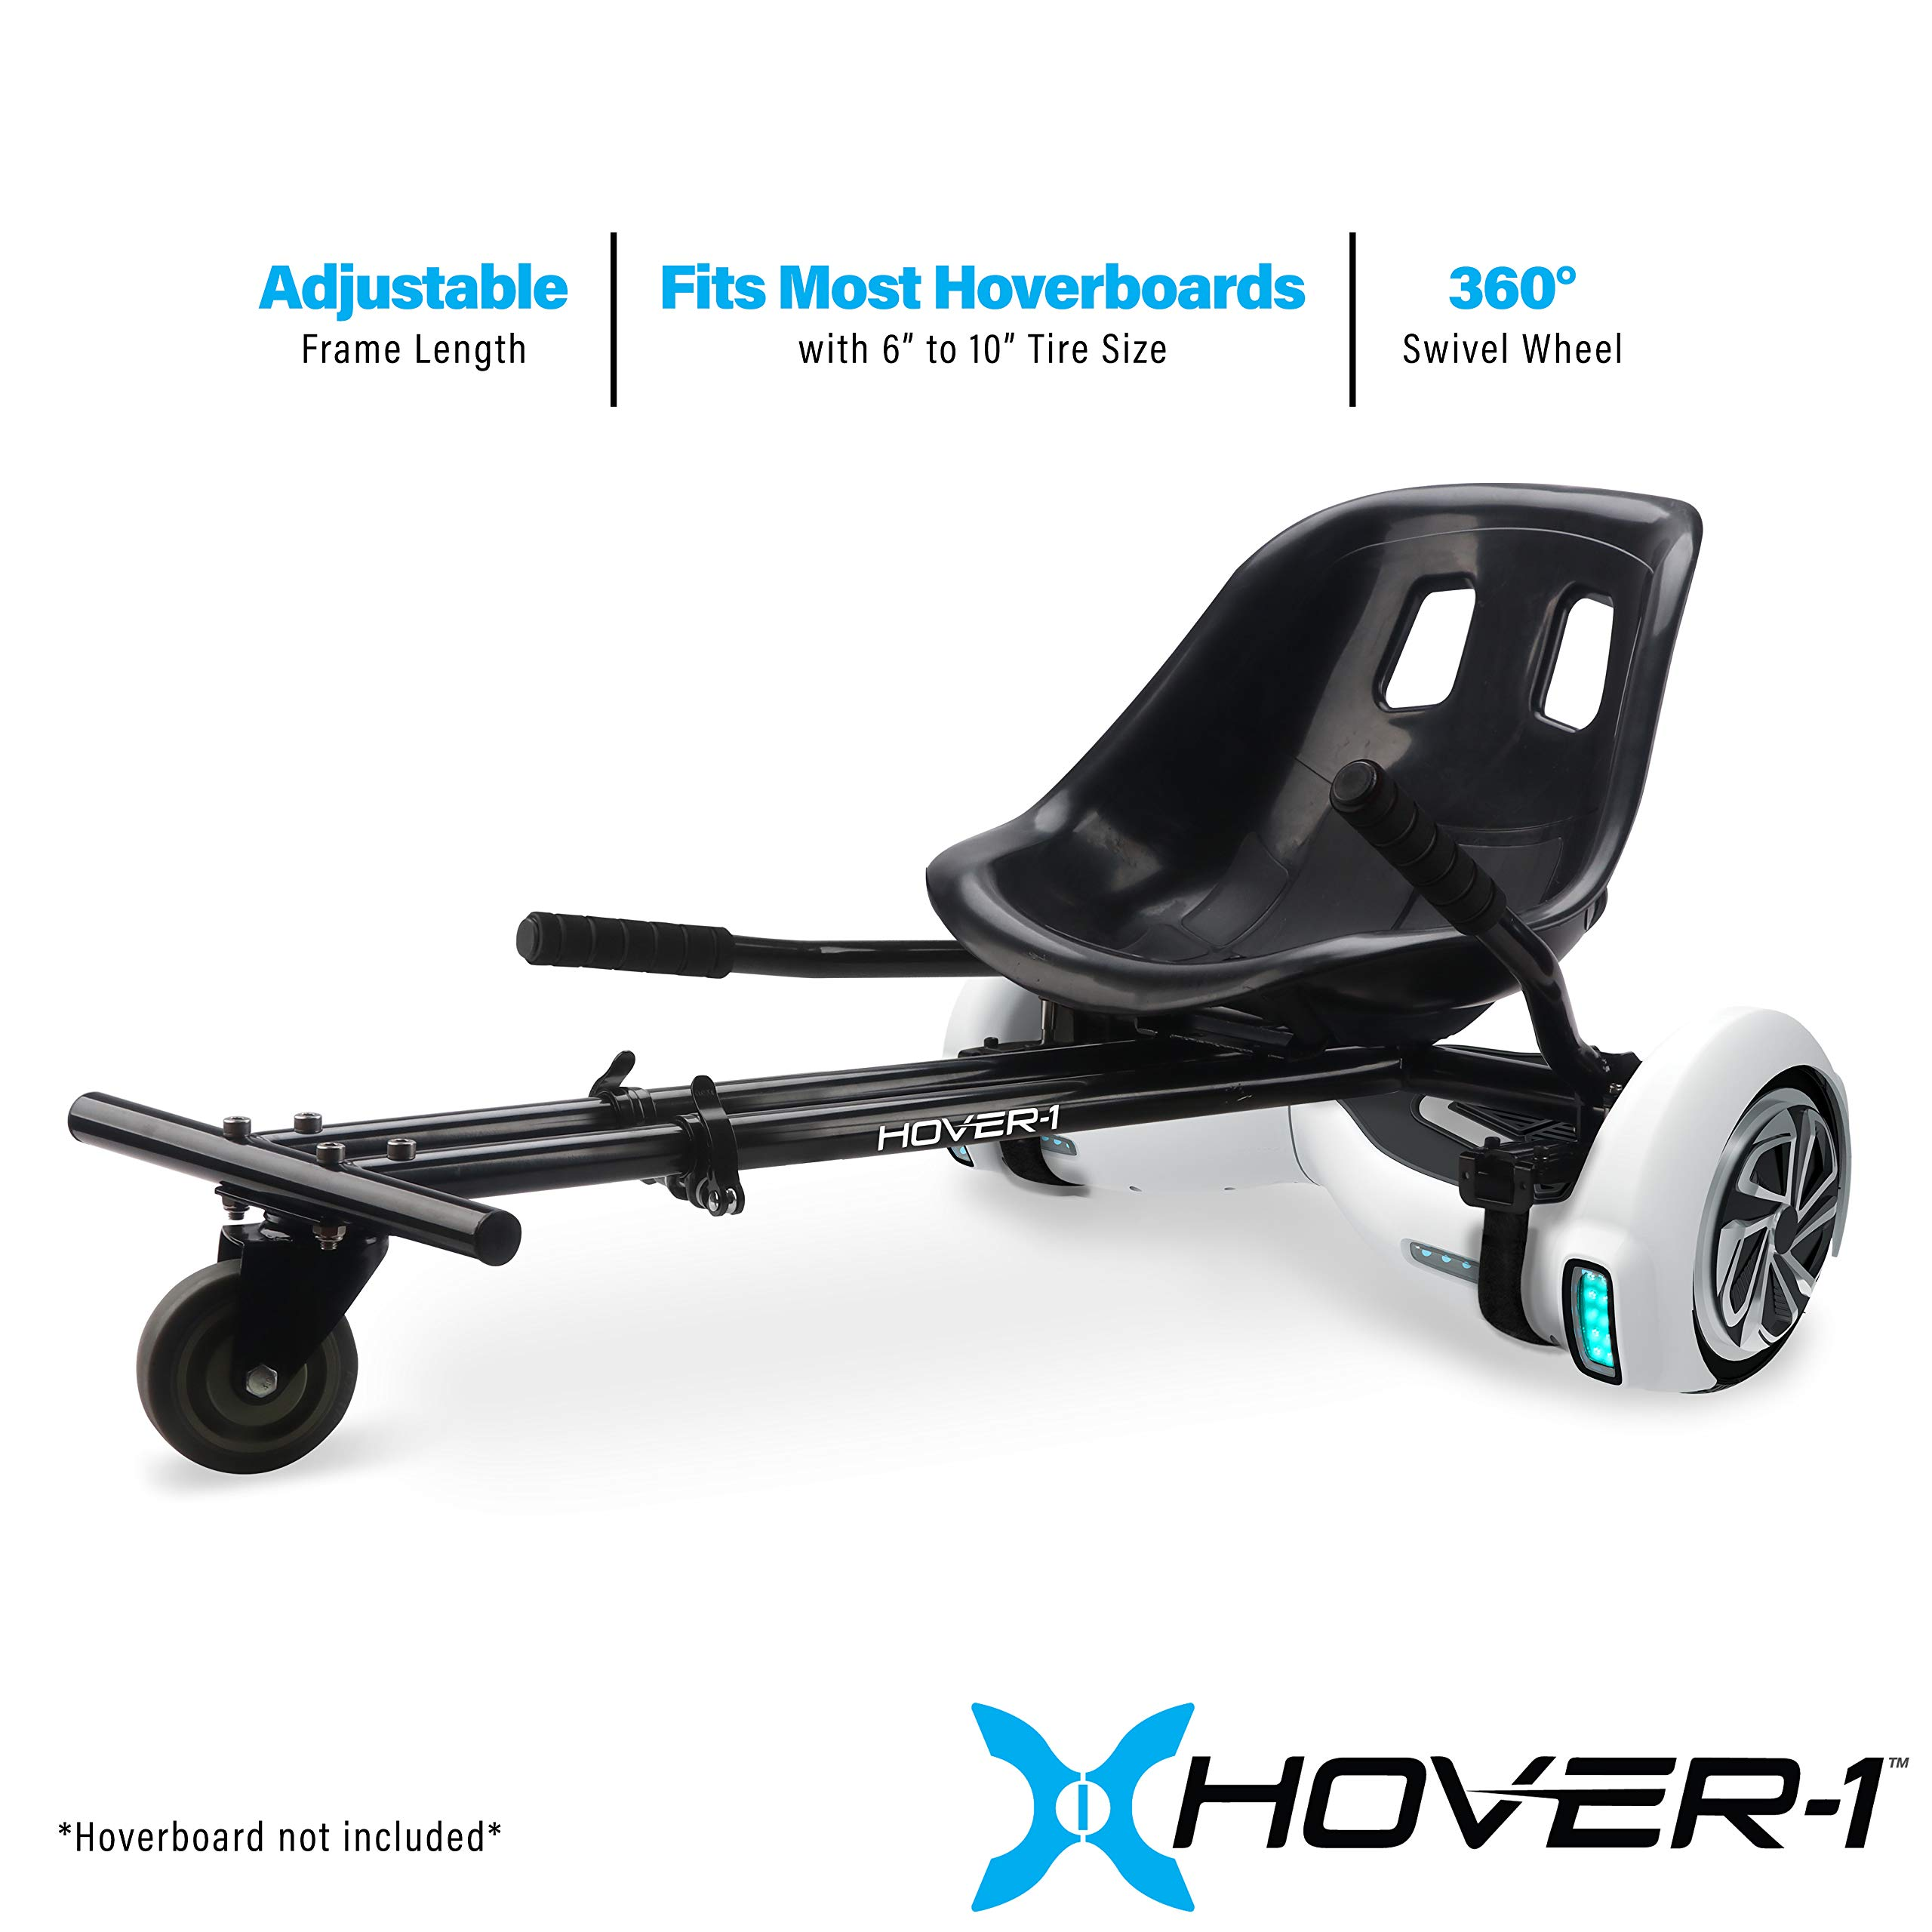 Hover-1 Buggy Attachment for Transforming Hoverboard Scooter into Go-Kart by HOVER-1